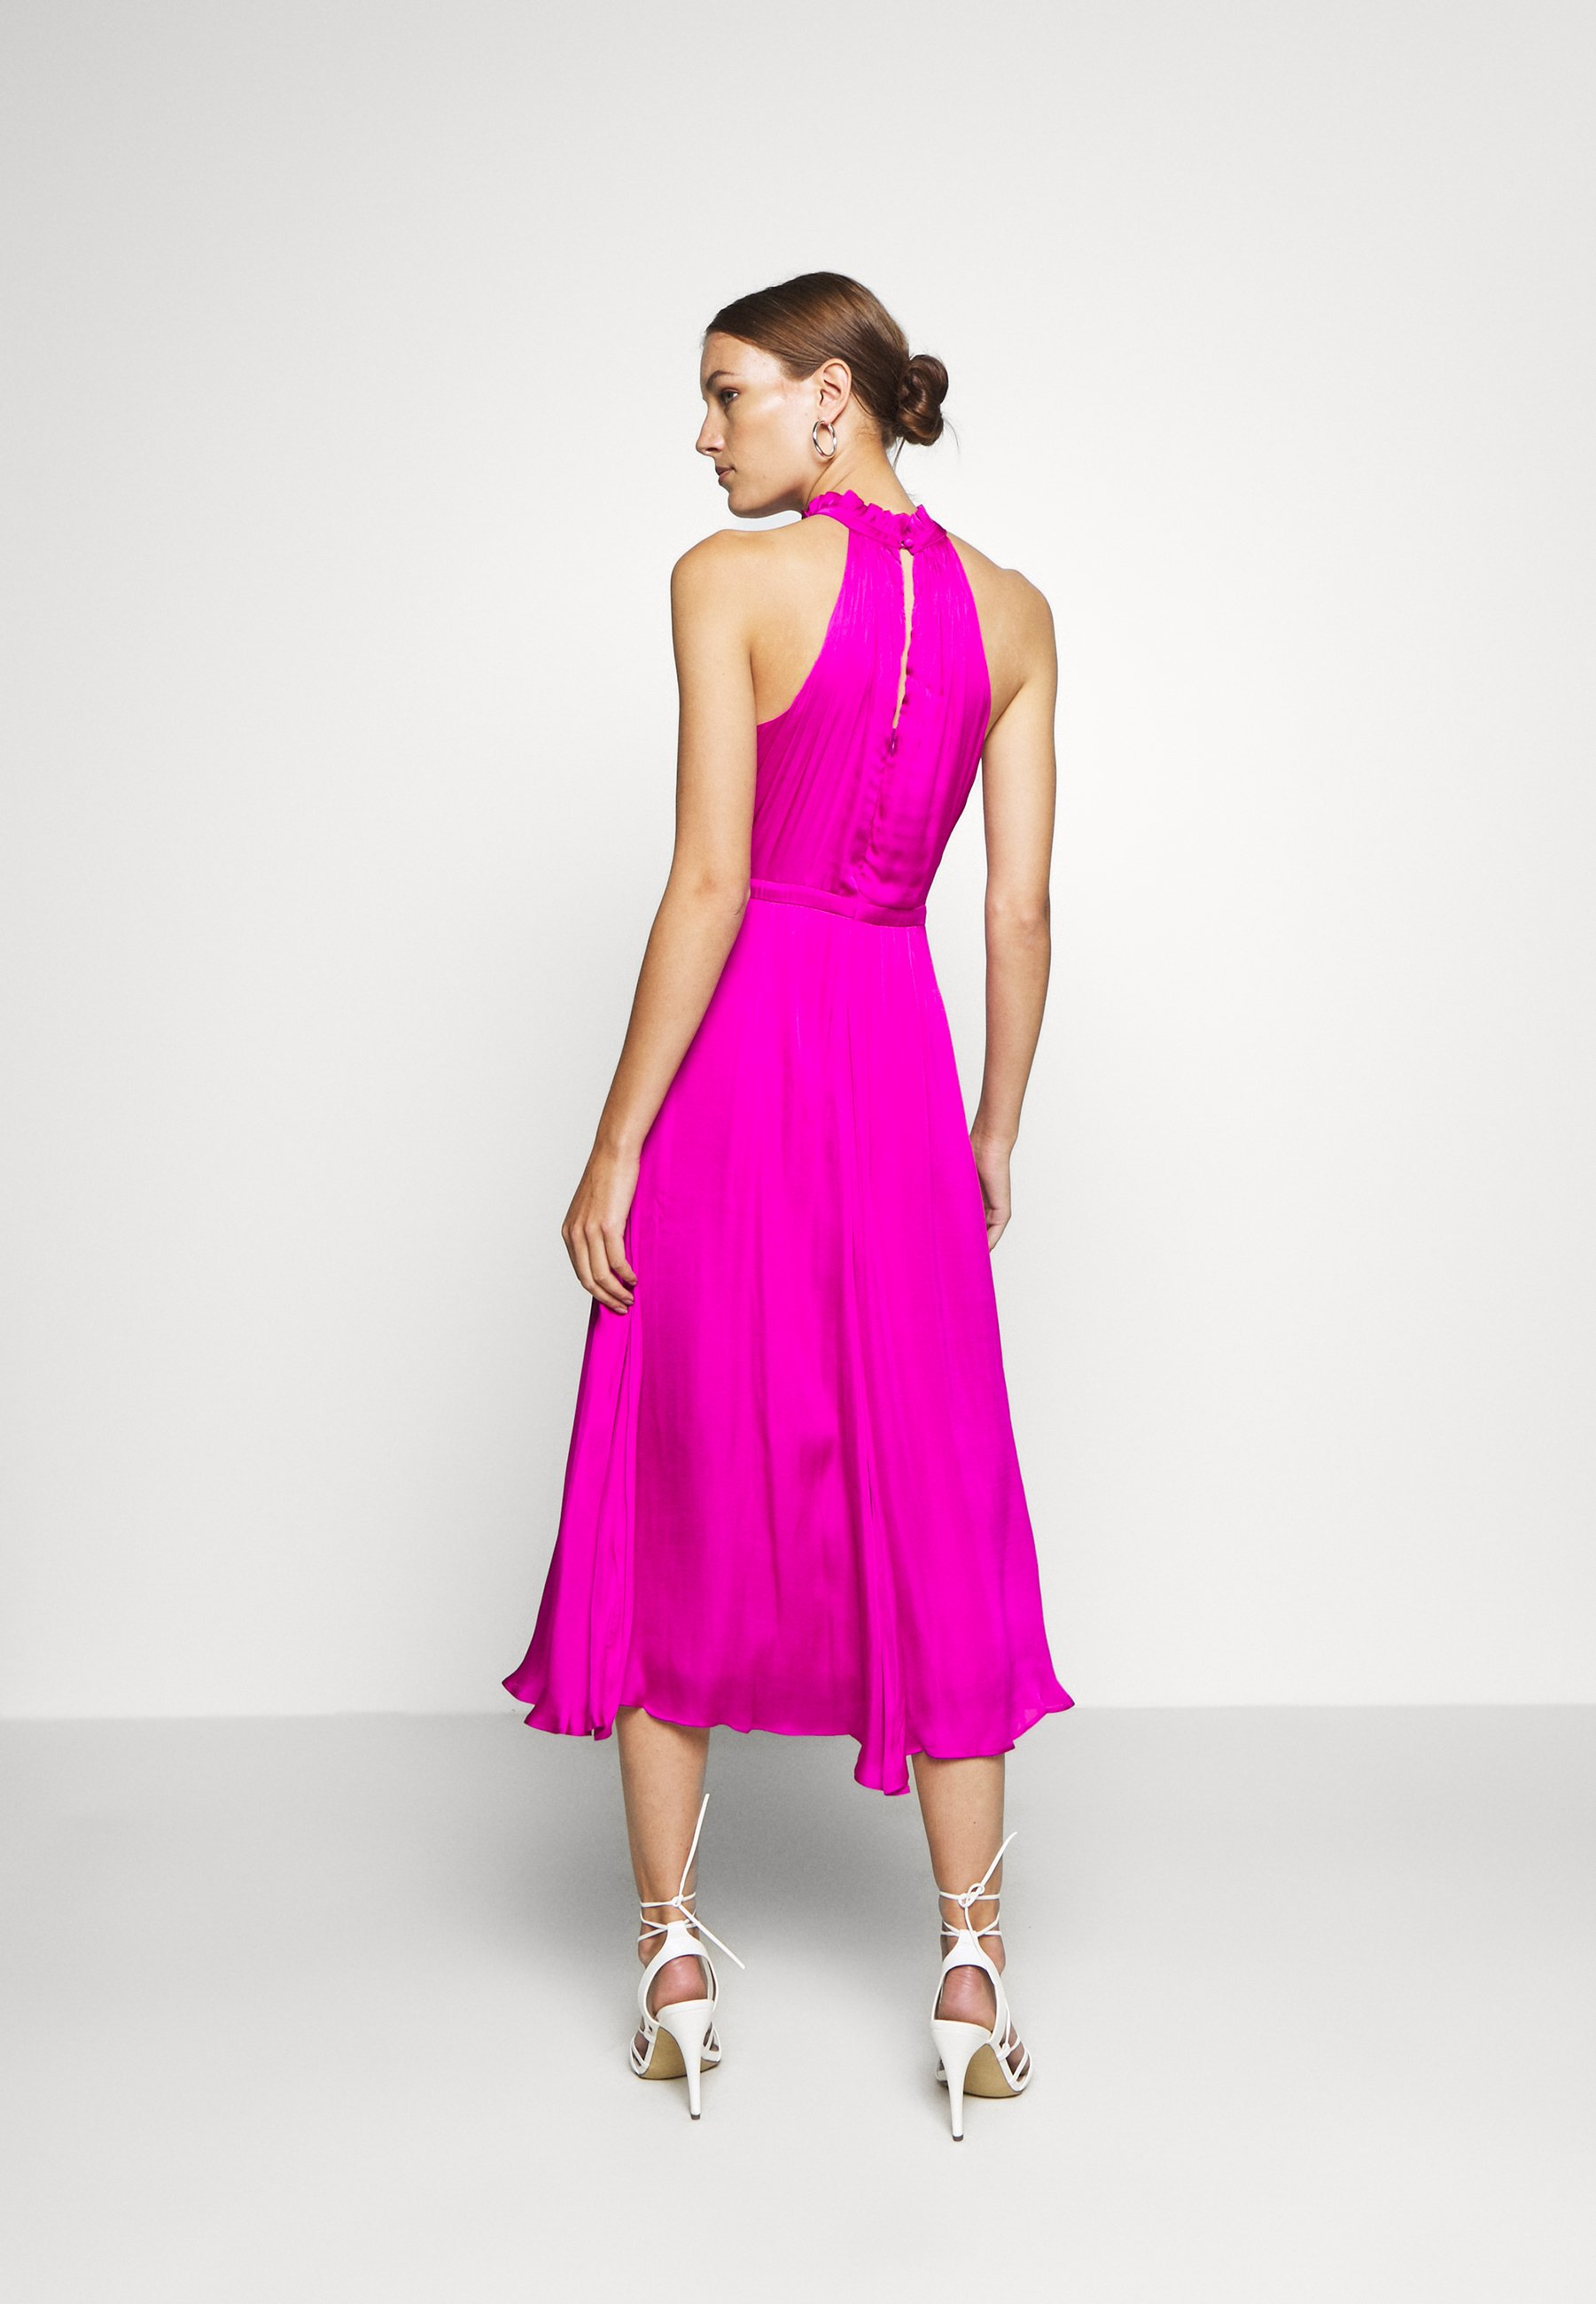 Banana Republic HALTER MIDI Freizeitkleid hot bright pink/pink